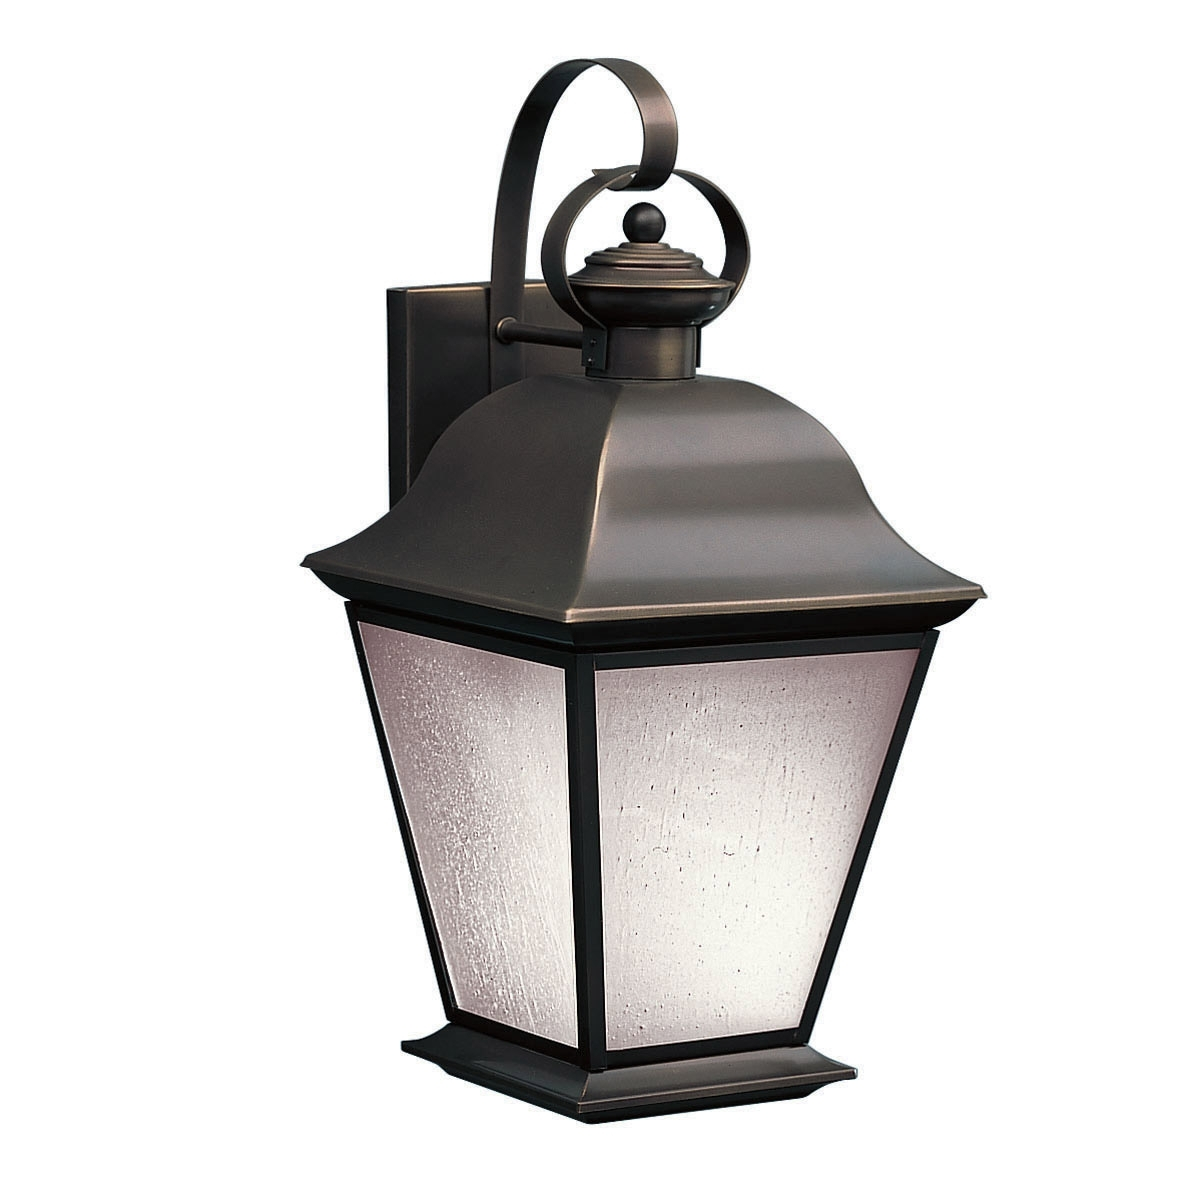 Best And Newest Light : Simple Uniques Minimalist Black Metal Hard Quality Outdoor Intended For Outdoor Wall Mount Led Light Fixtures (View 6 of 20)